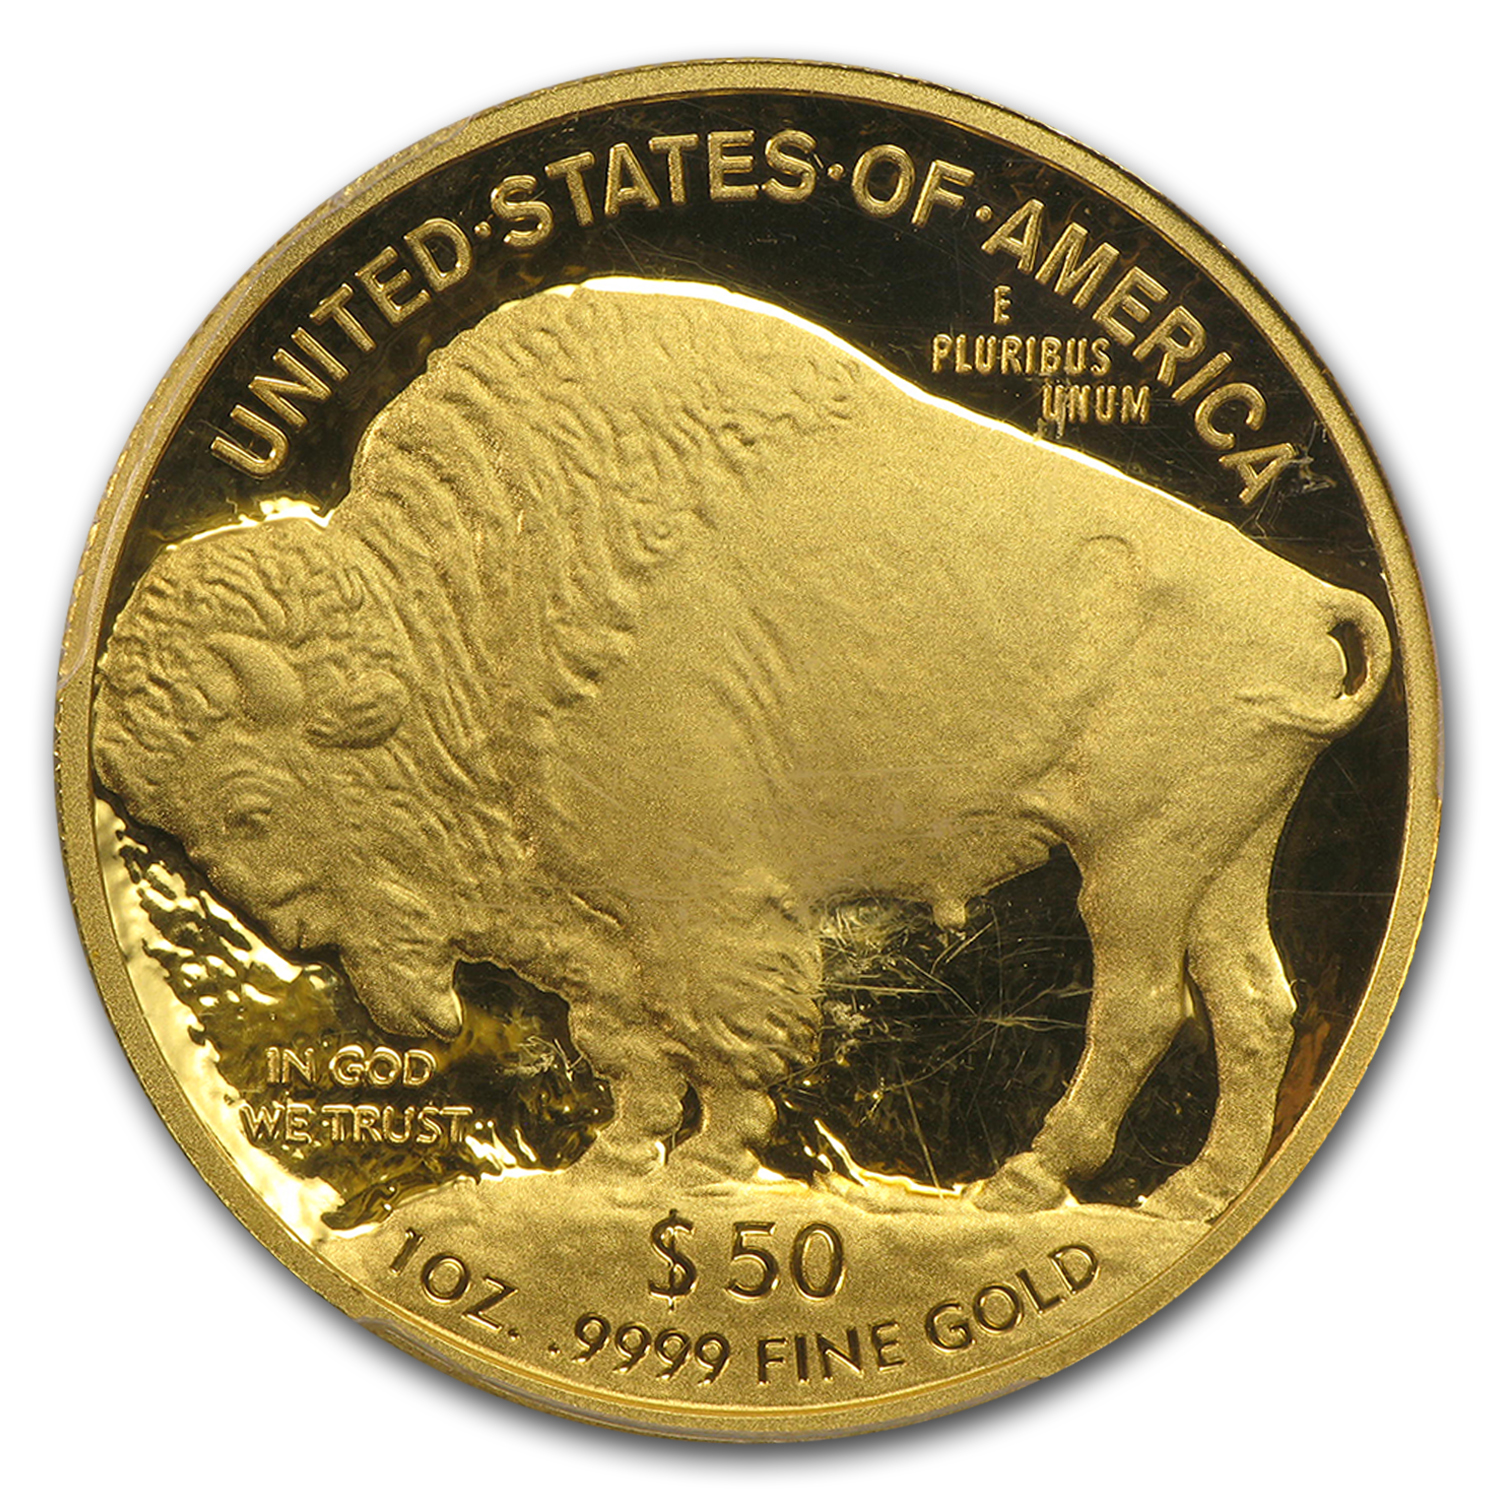 2010-W 1 oz Proof Gold Buffalo PR-70 DCAM PCGS